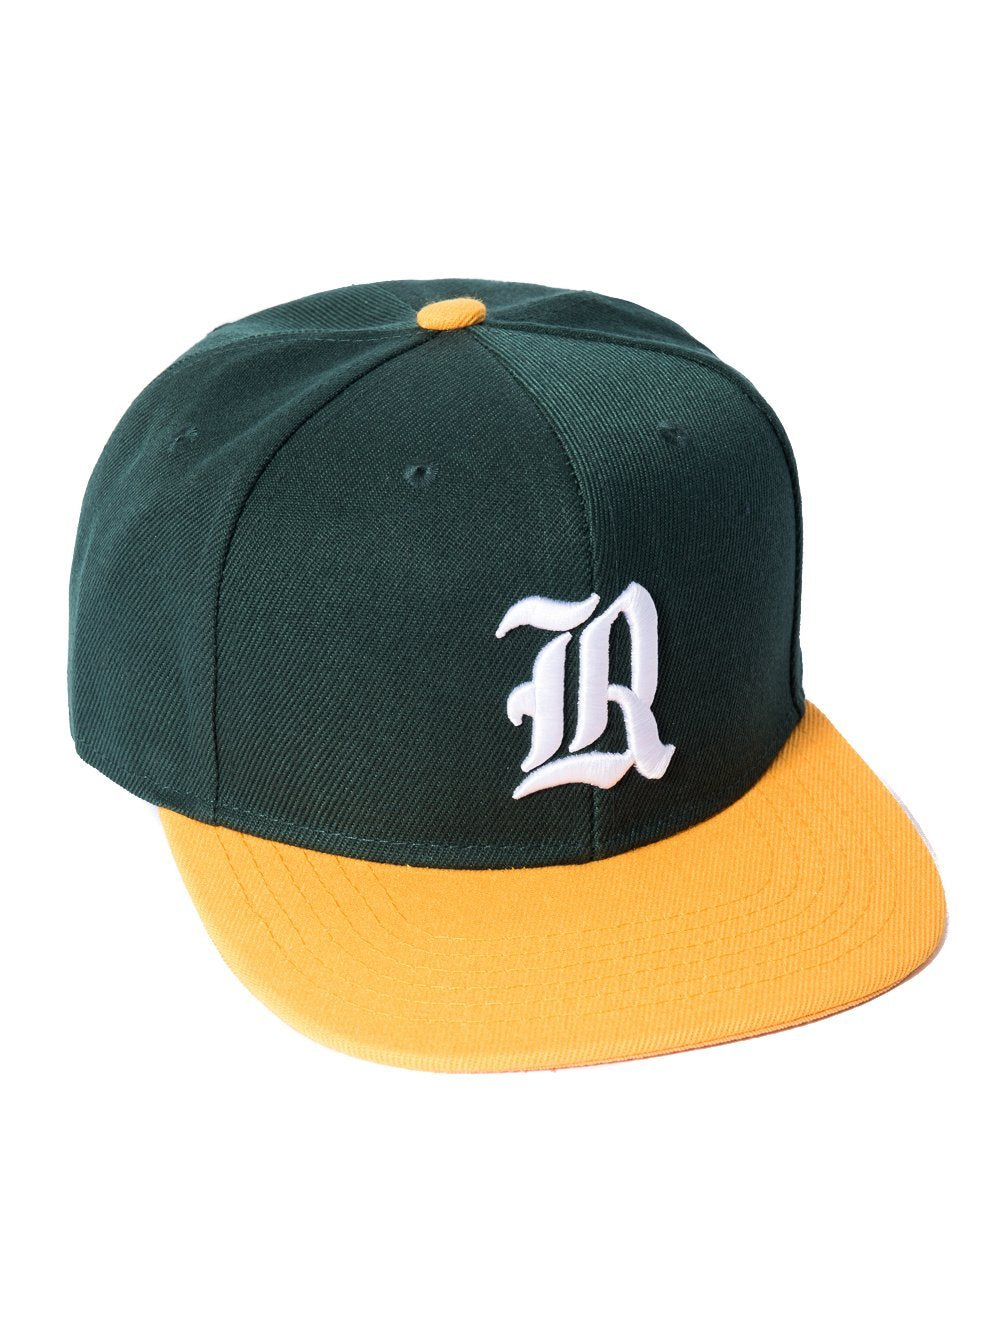 5410352227a5e ... Young and Reckless Mens - Headwear - Snapback Olde R Fitted Hat - Green Yellow  ...